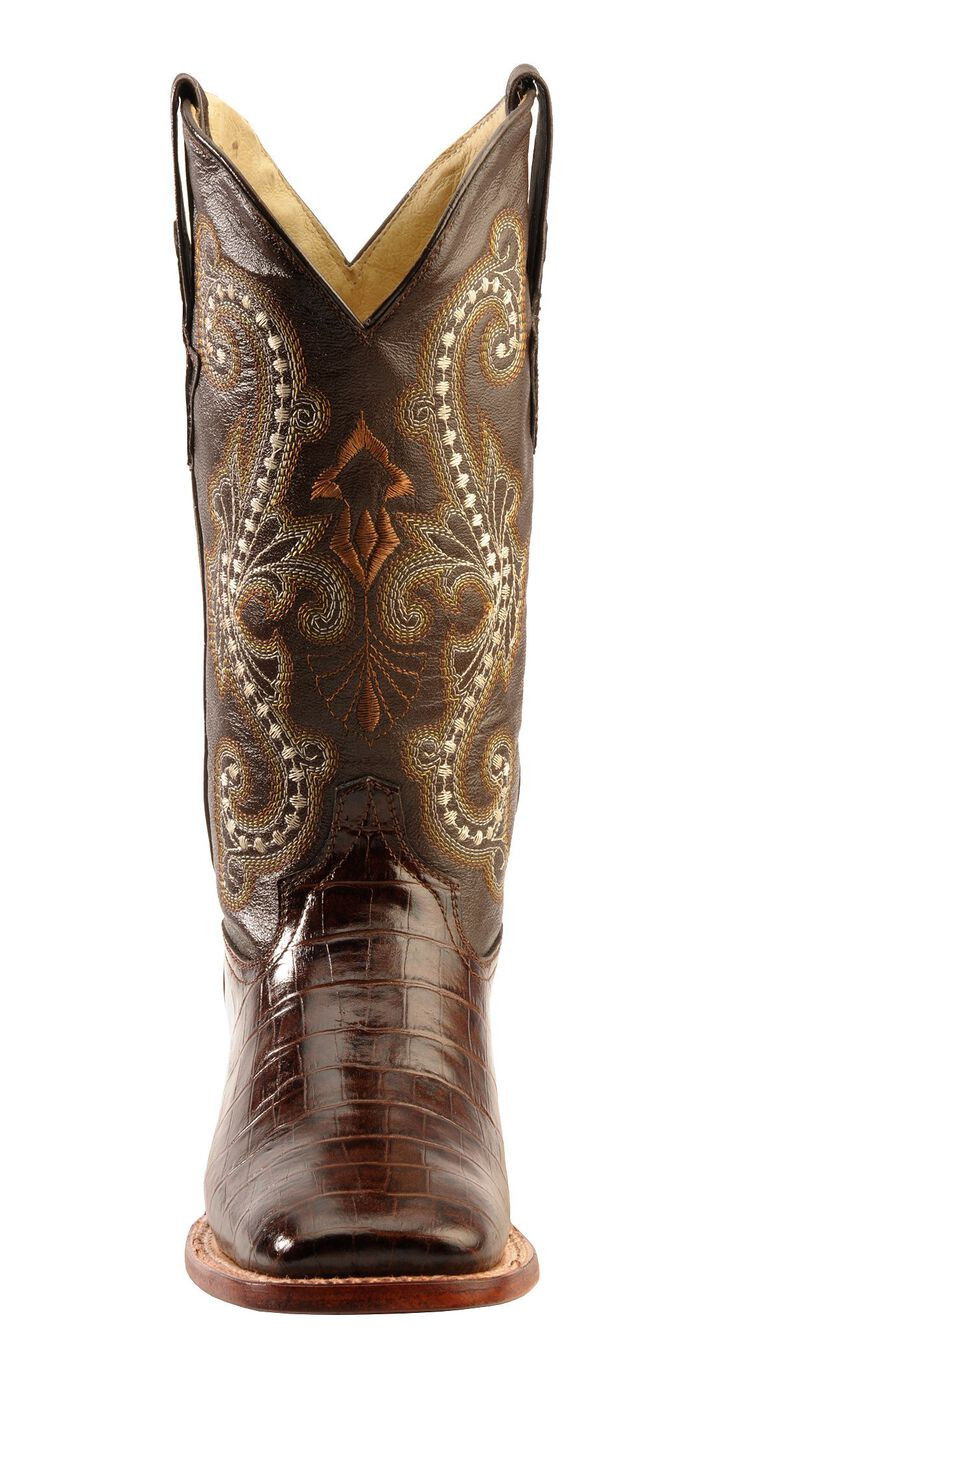 Ferrini Chocolate Alligator Belly Print Cowgirl Boots - Wide Square Toe, Chocolate, hi-res